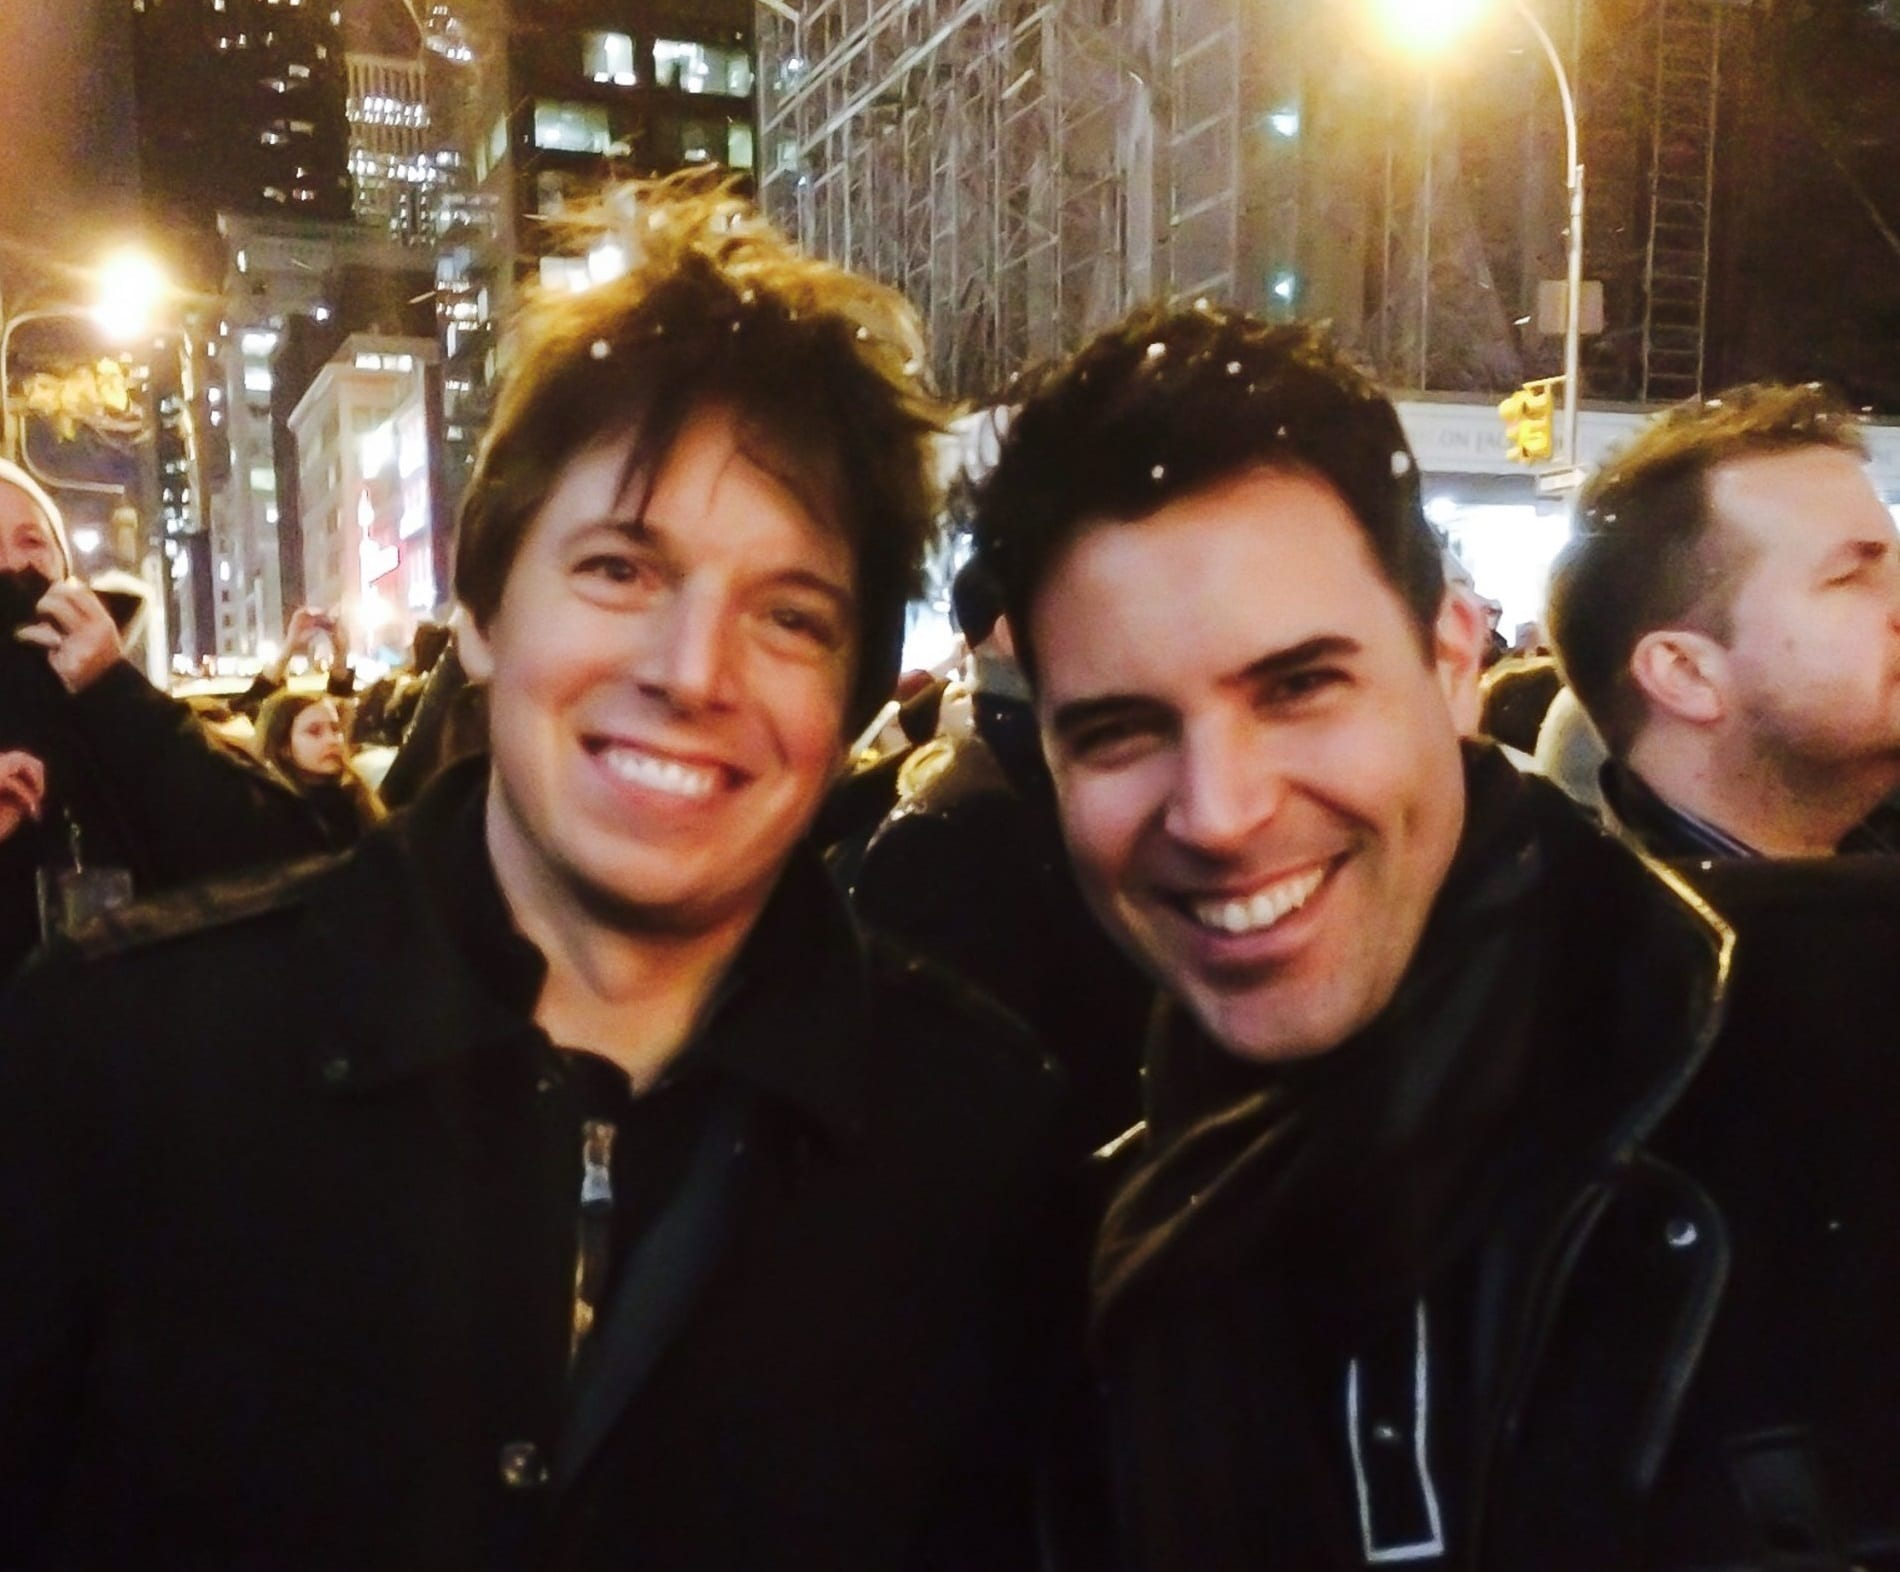 MORENO FEATURED ON JOSHUA BELL HOLIDAY ALBUM